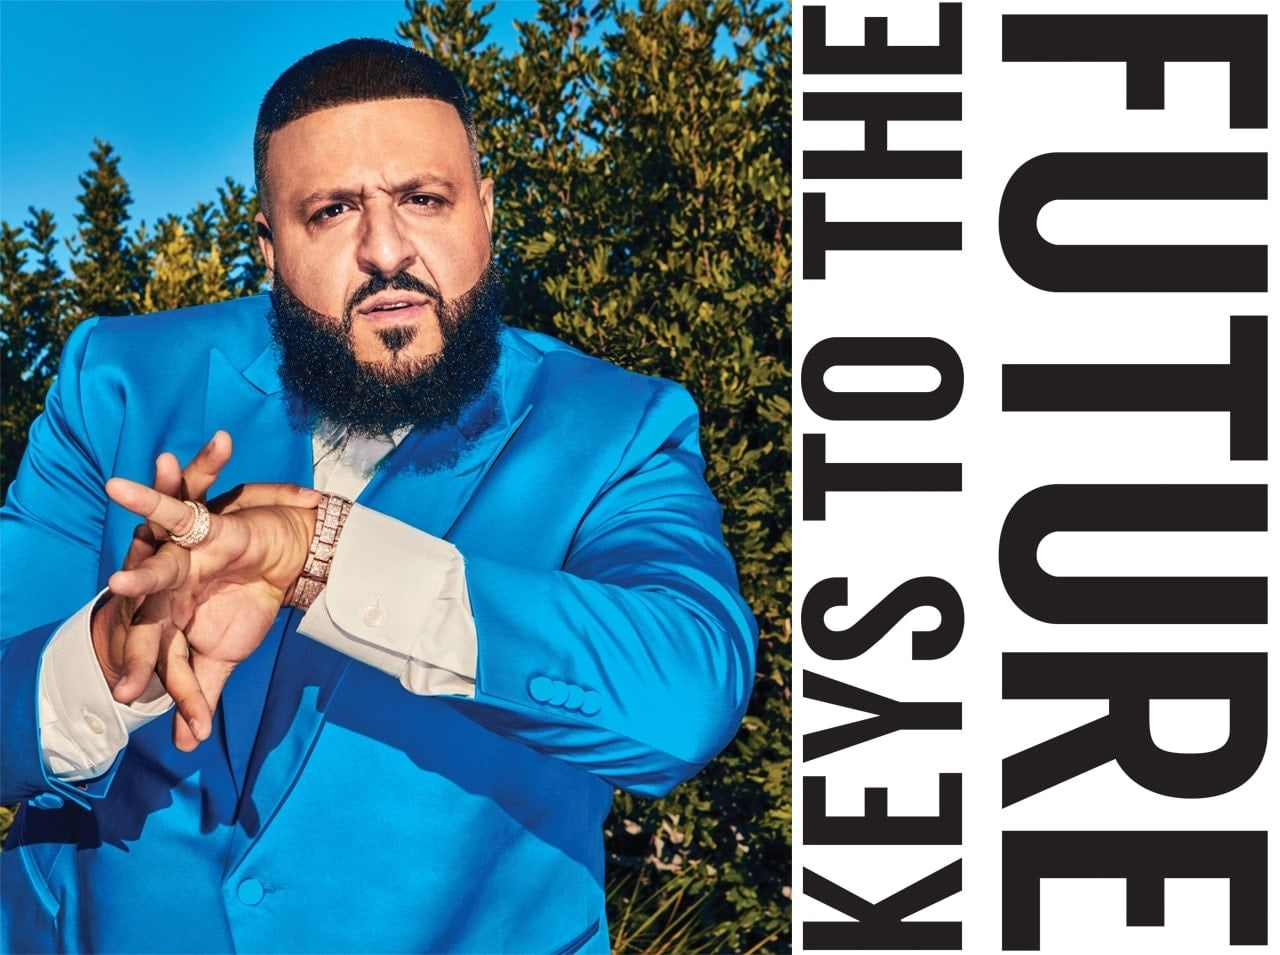 56a6f3d85e8a76 DJ Khaled Reflects on His Early Start in the Music Business and the  Importance of Staying Positive